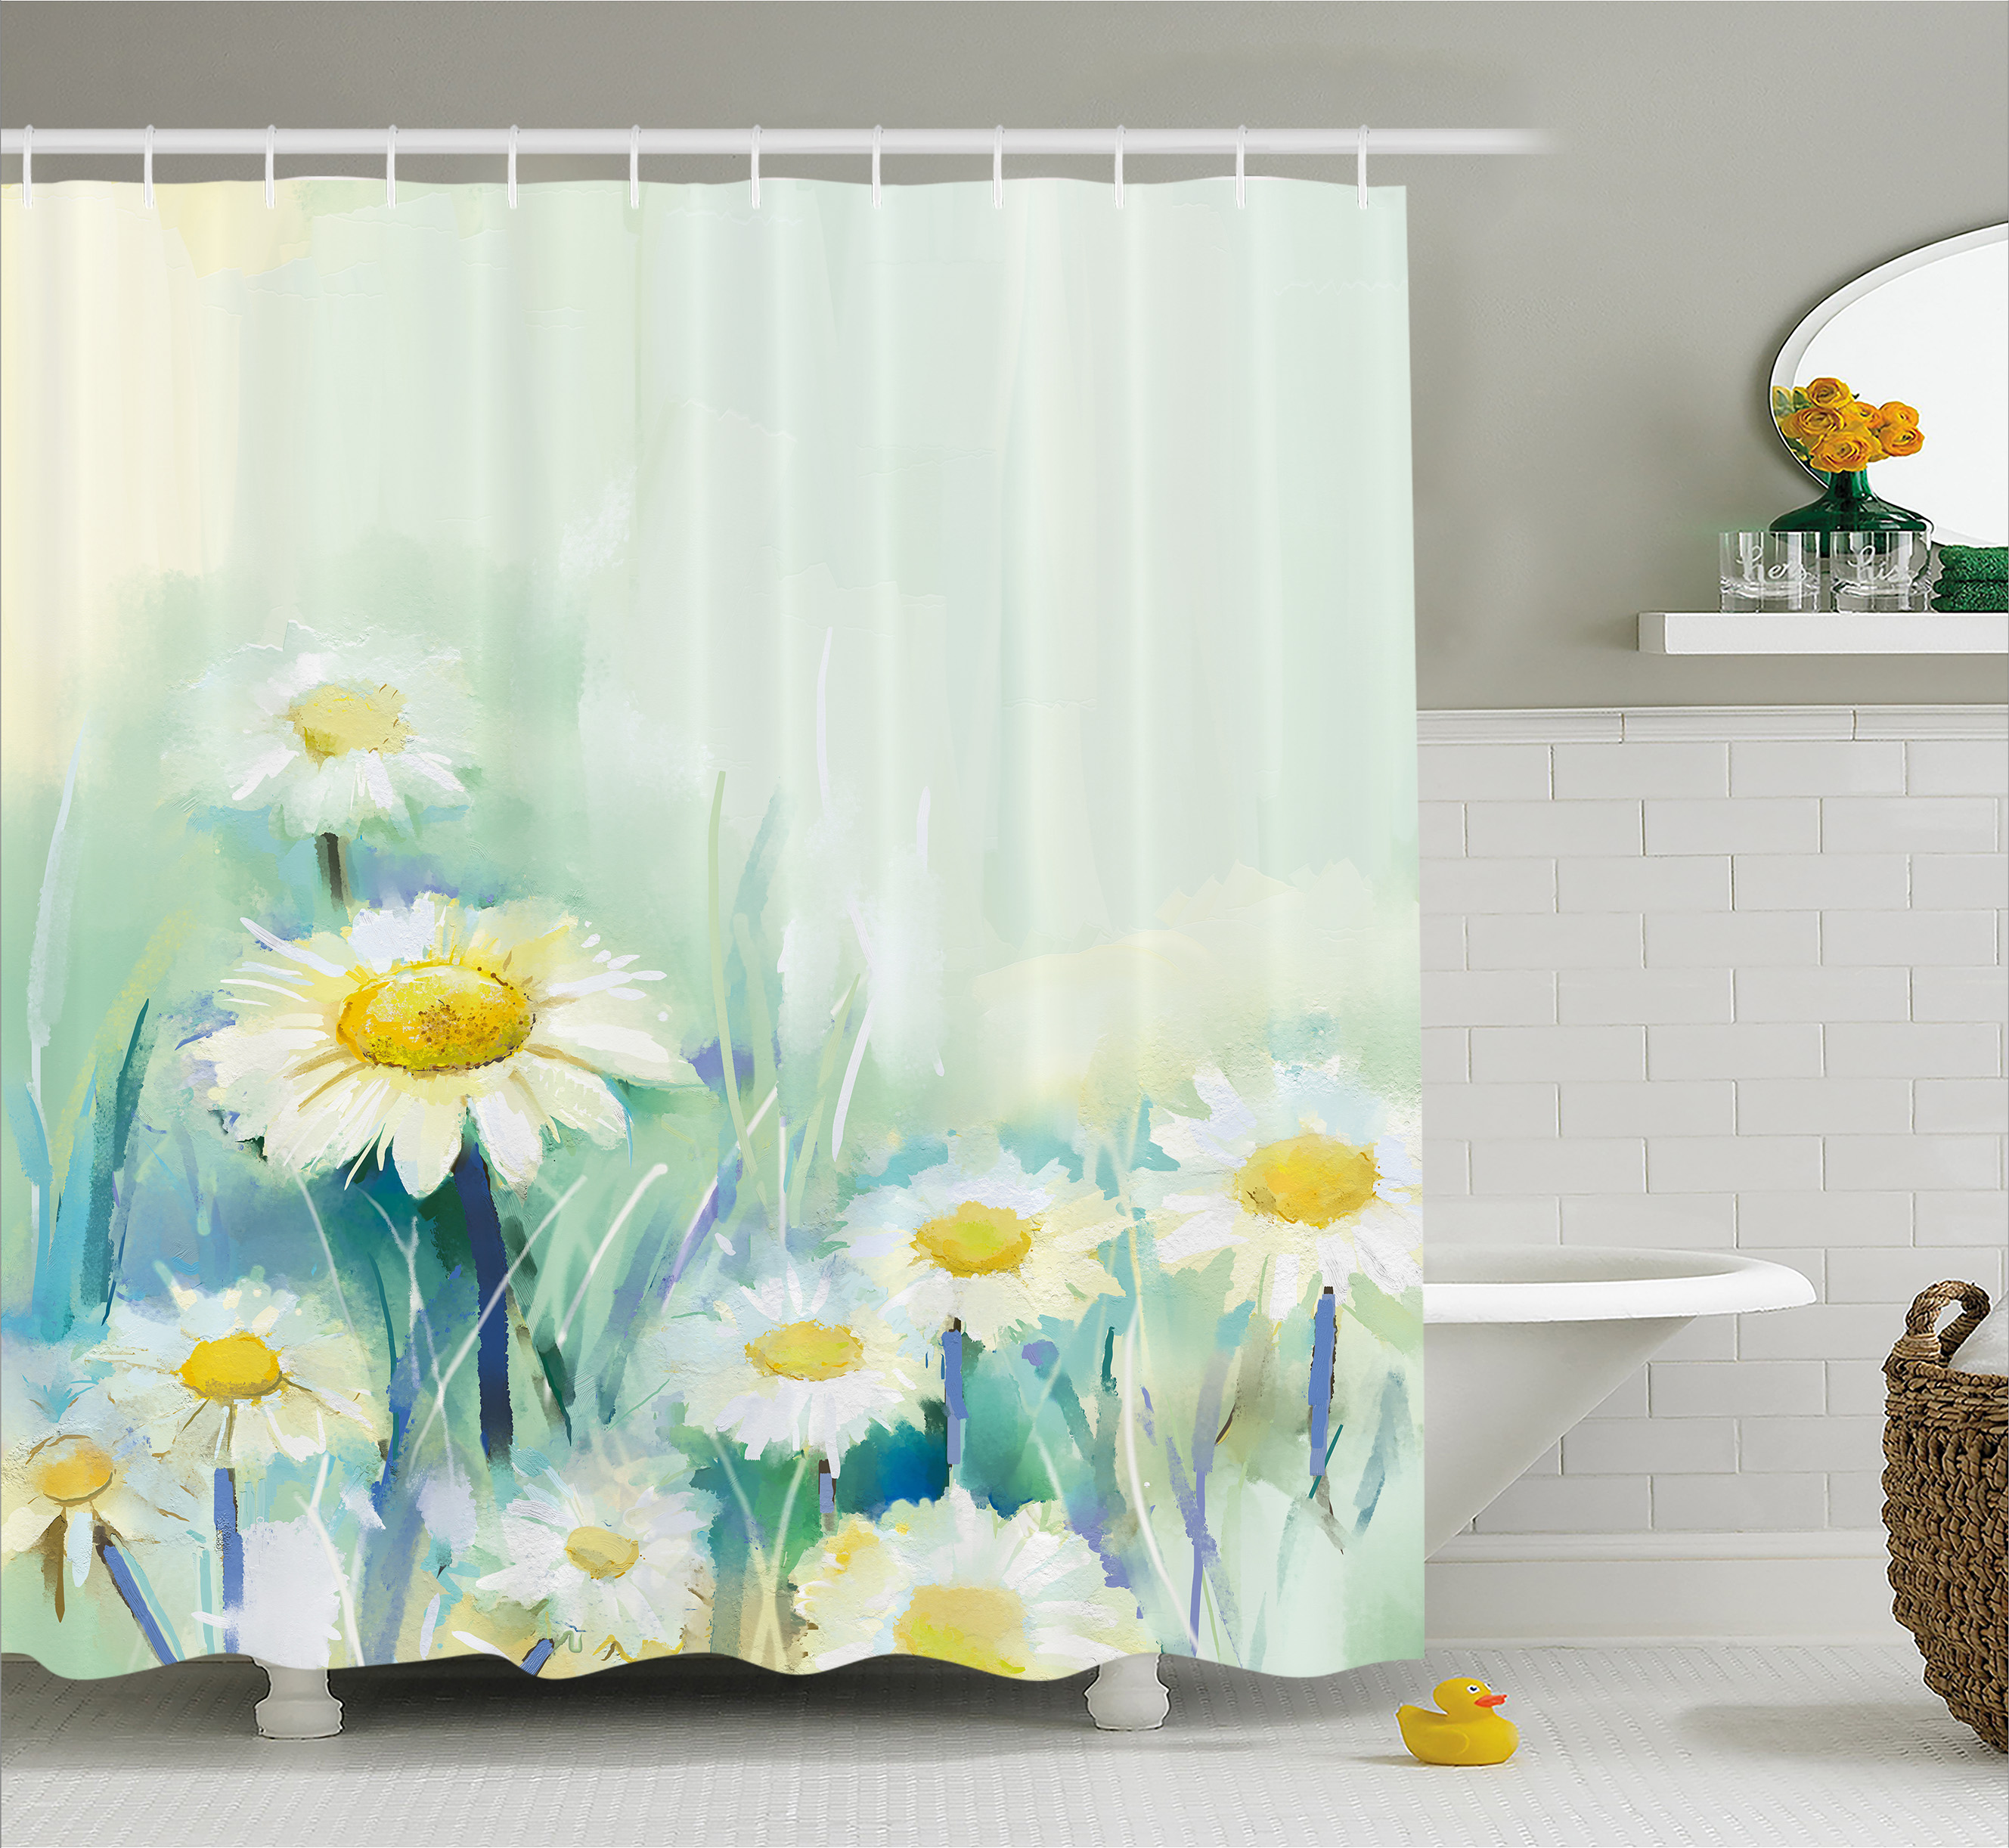 Flower Shower Curtain, Daisies on Grass Mother Earth